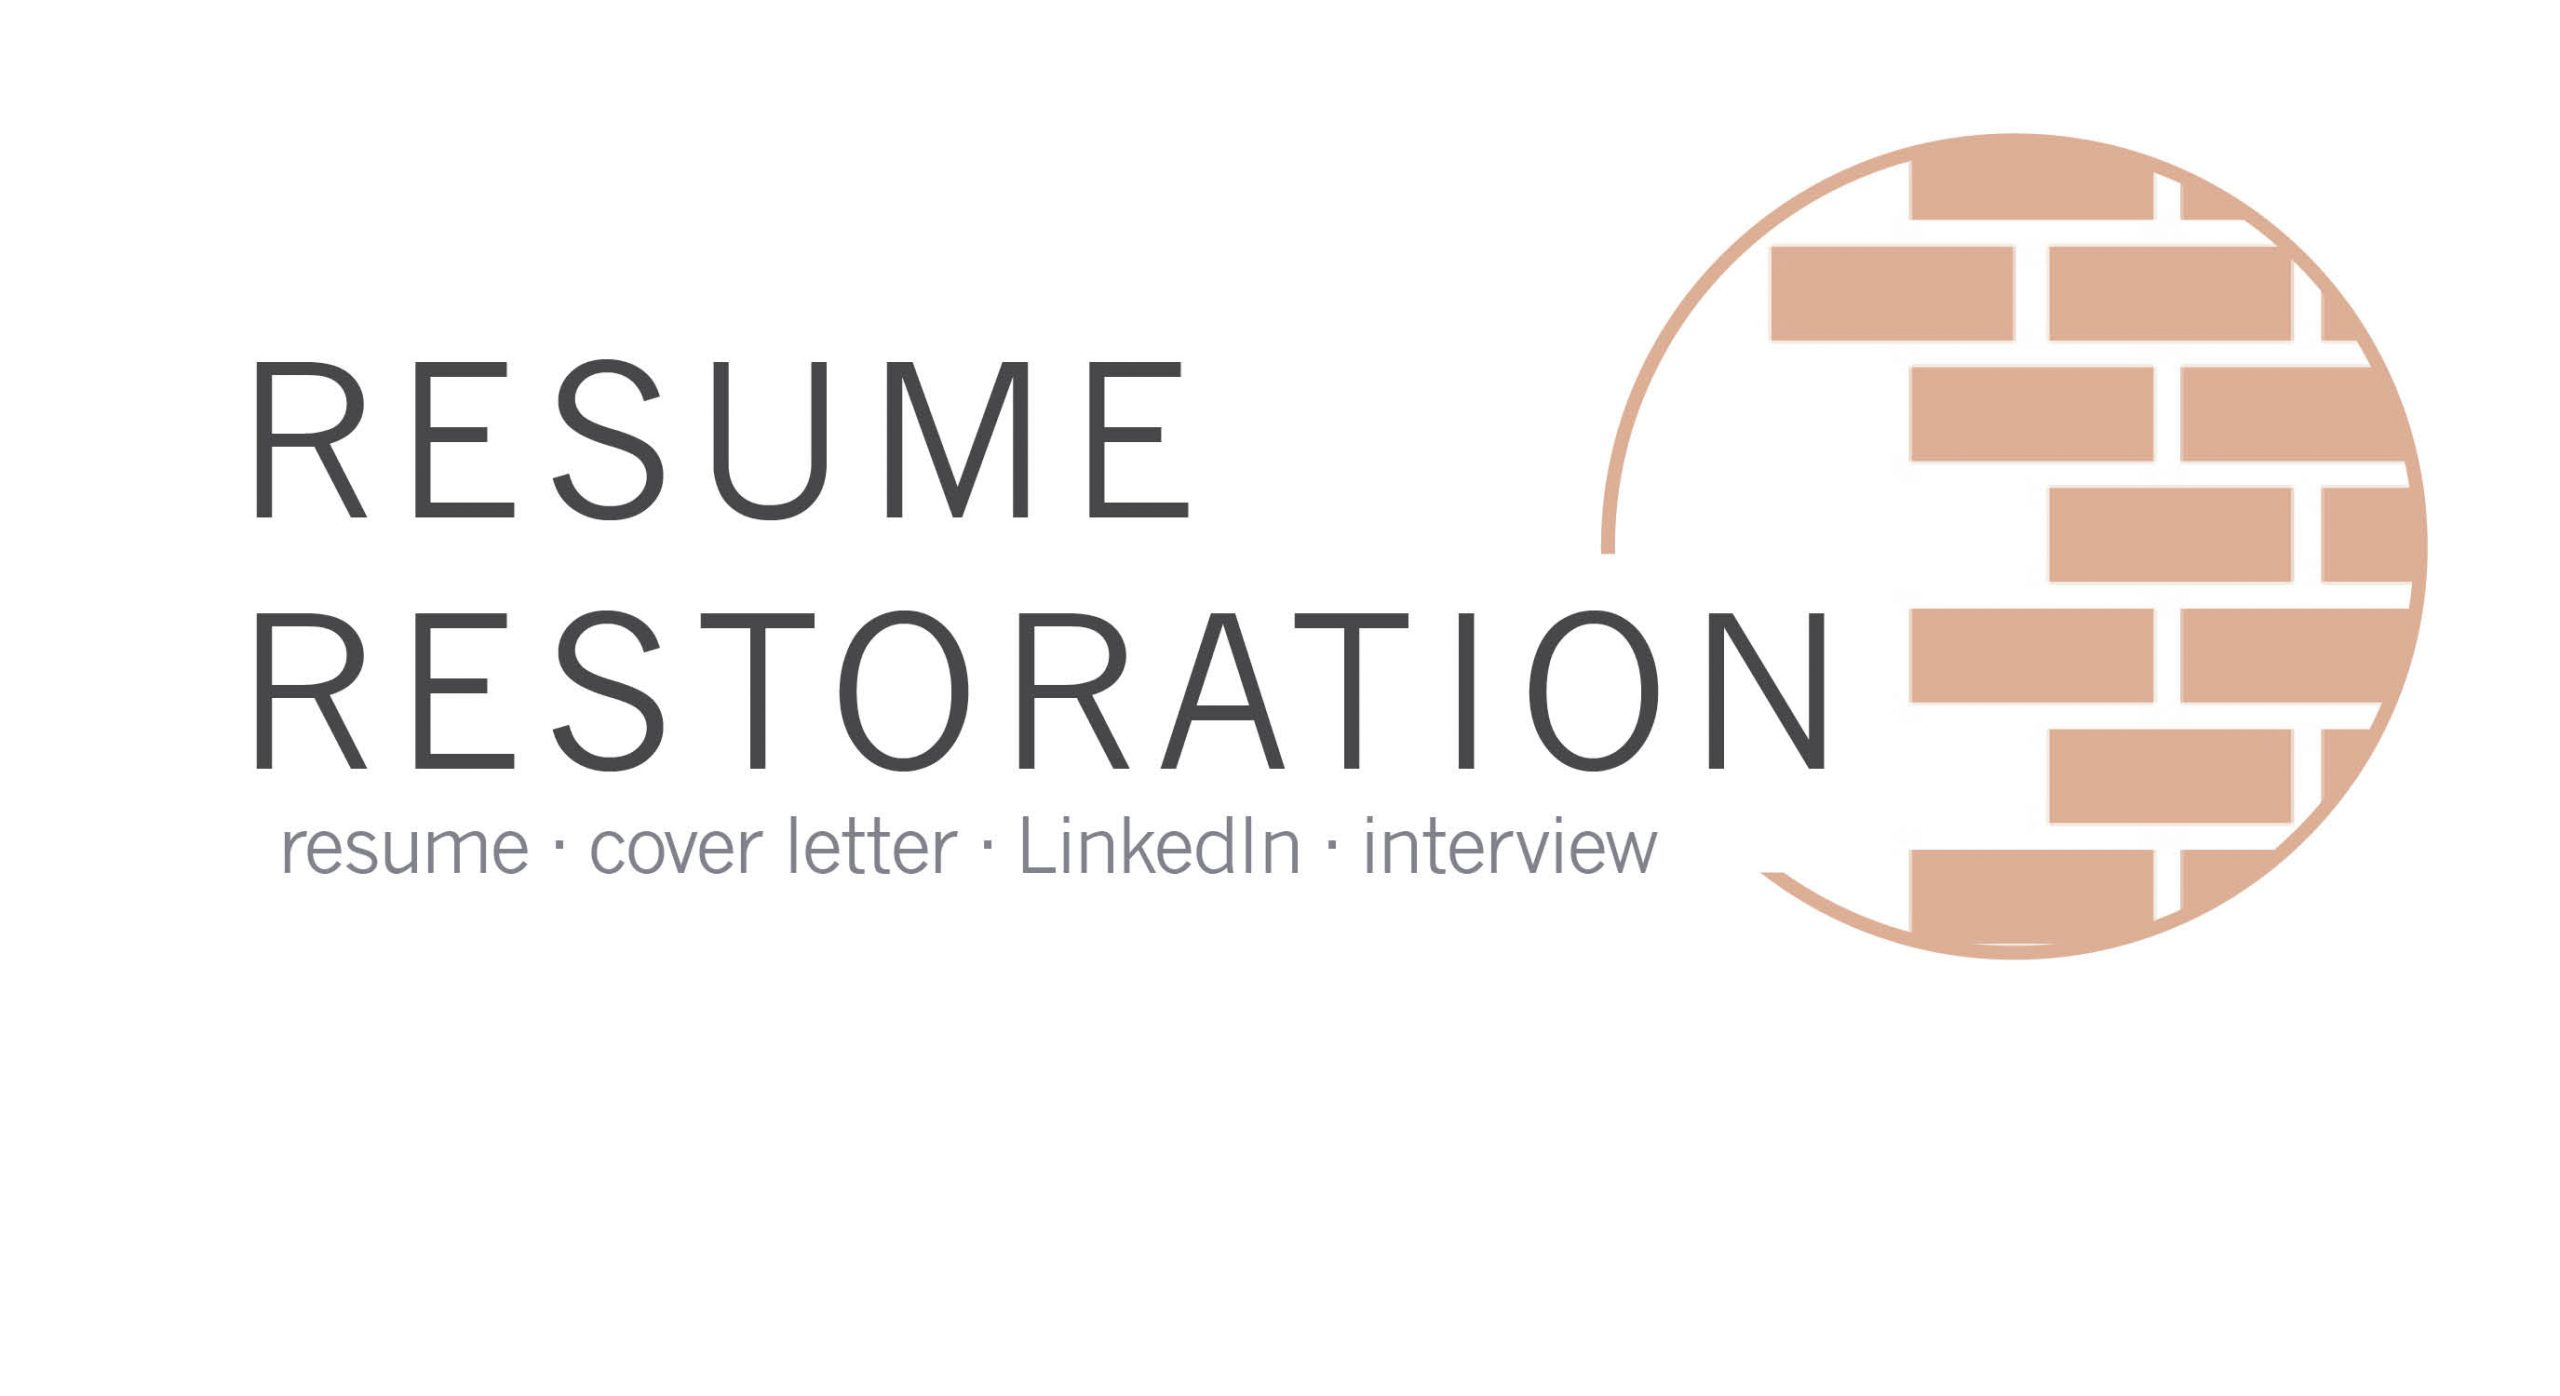 Clementine Crooks and Erin Wallace of Resume Restoration specialize in writing and designing affordable resumes that reap powerful results. They also provide support with Cover Letters, LinkedIn, and Job Interviews.